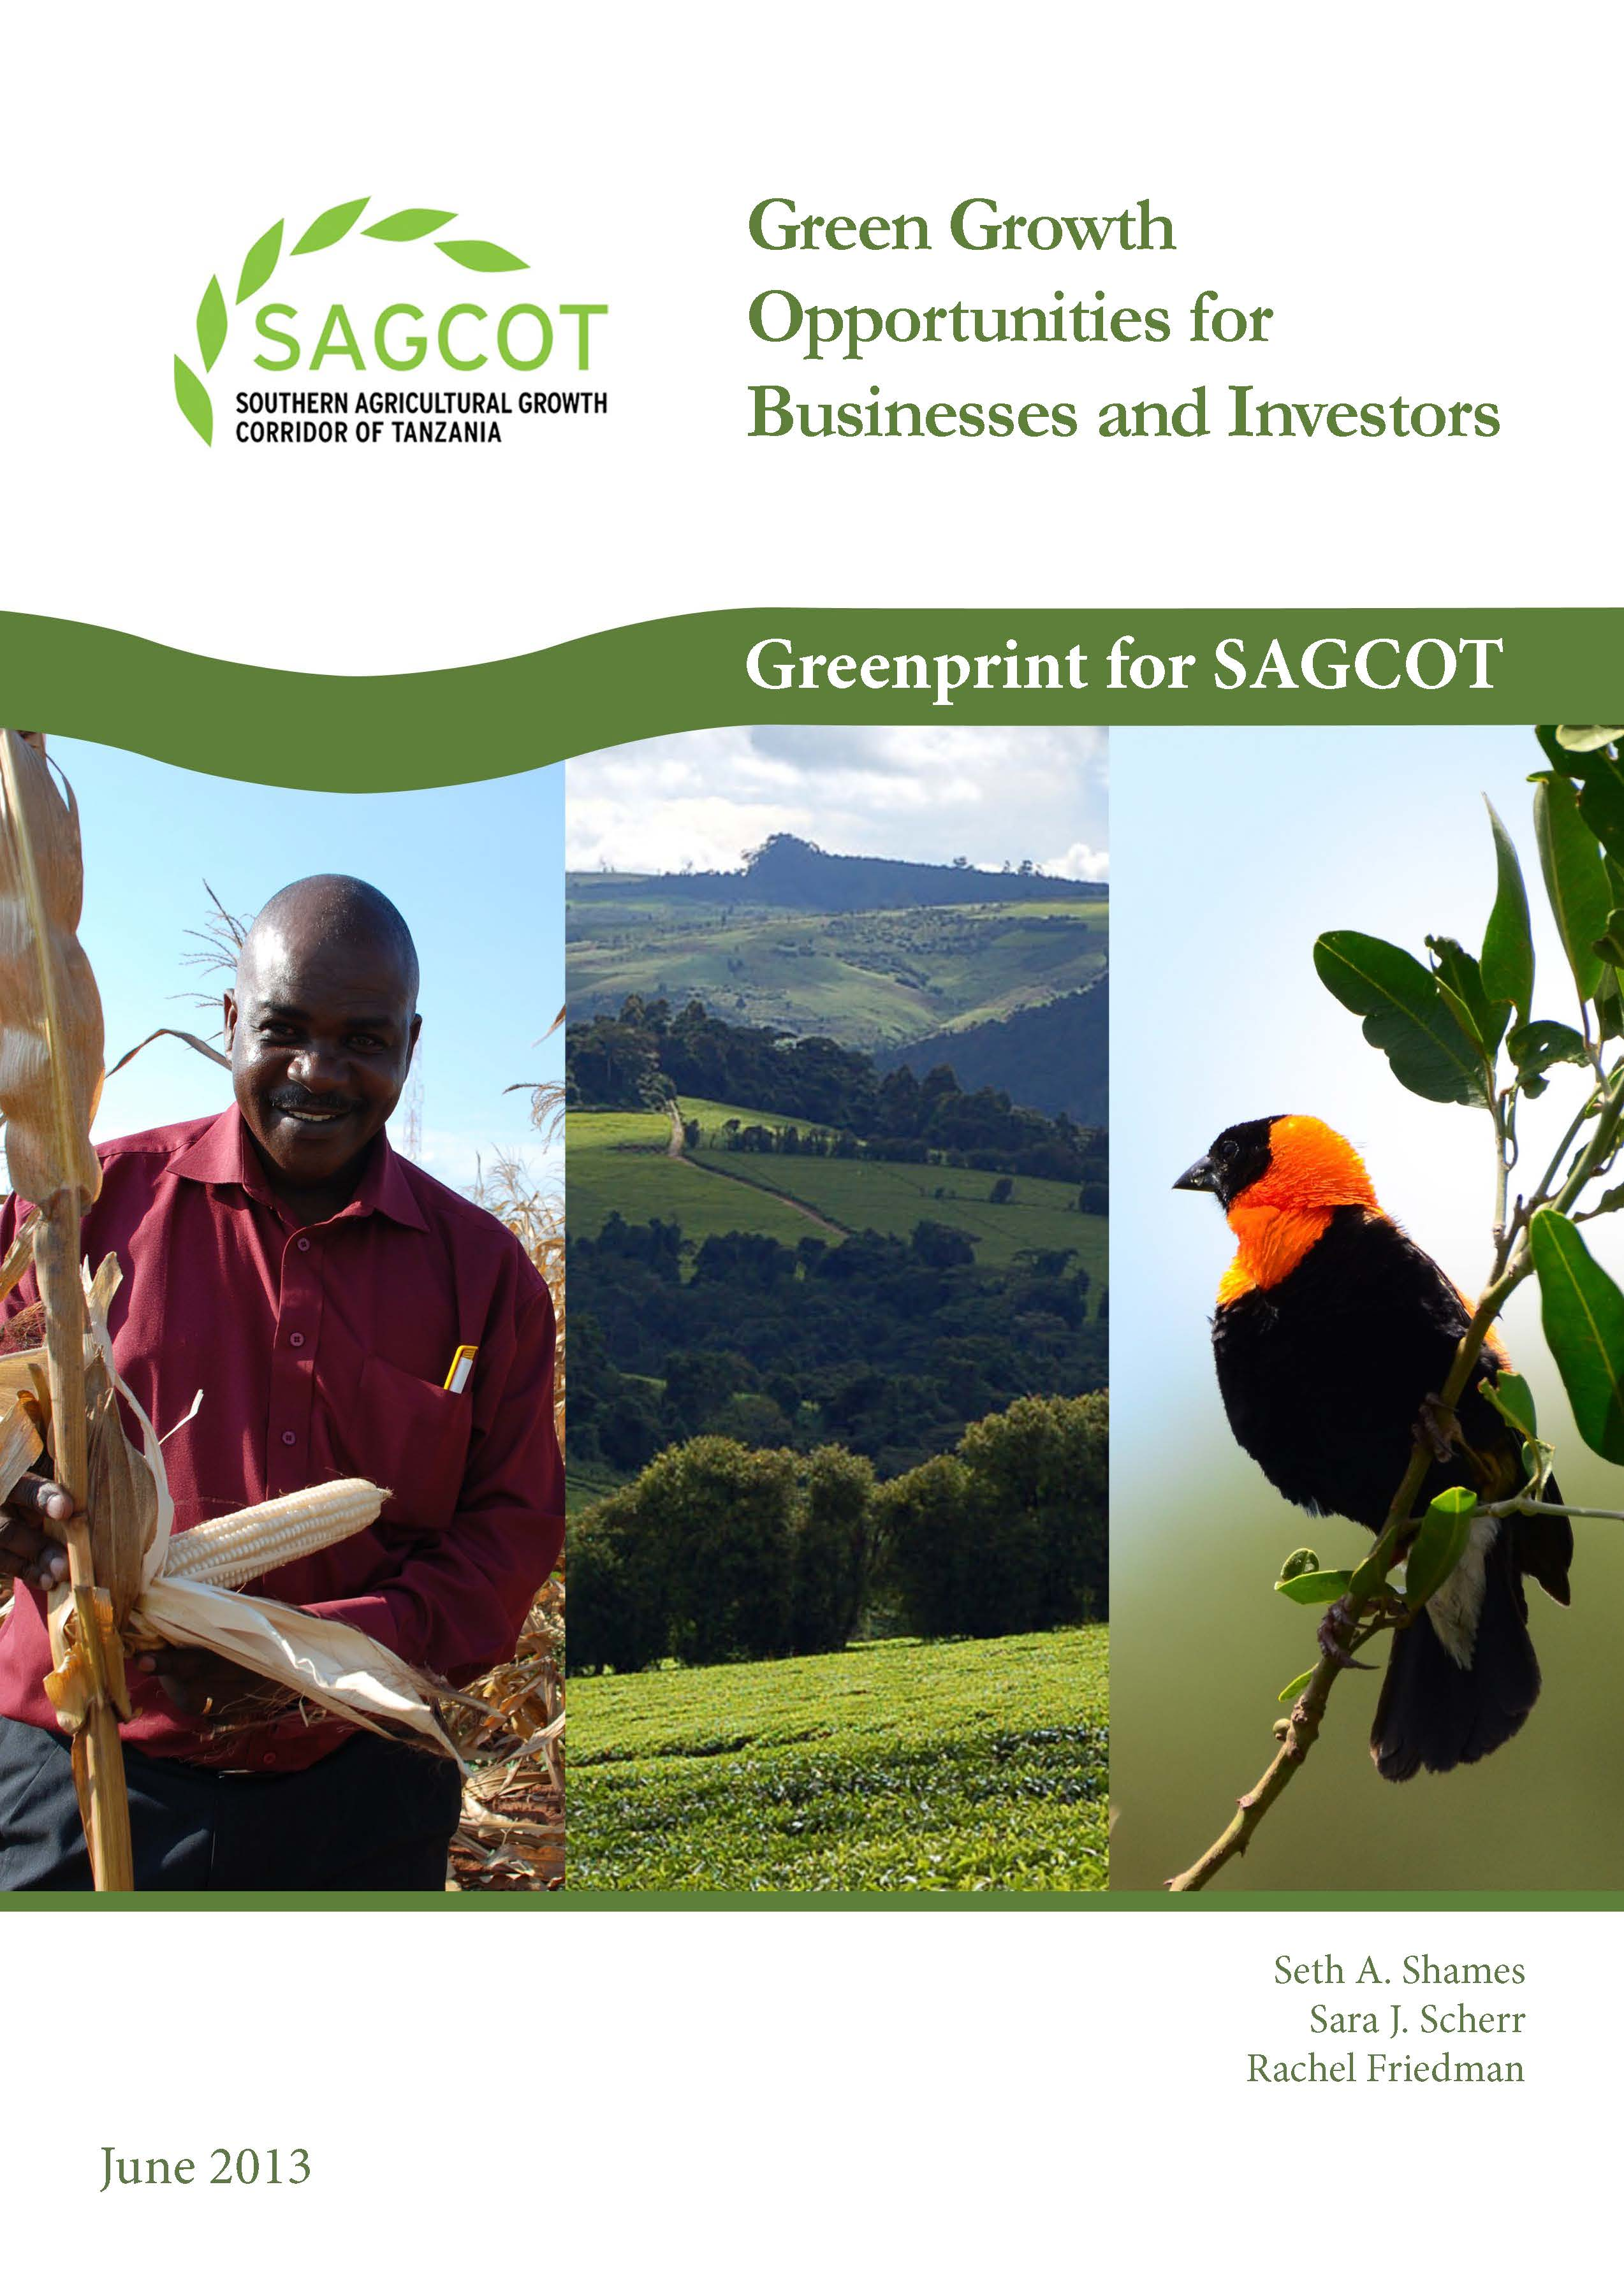 AGG Opportunities for Businesses and Investors - Greenprint for SAGCOT (June 2013) Cover_Page_01